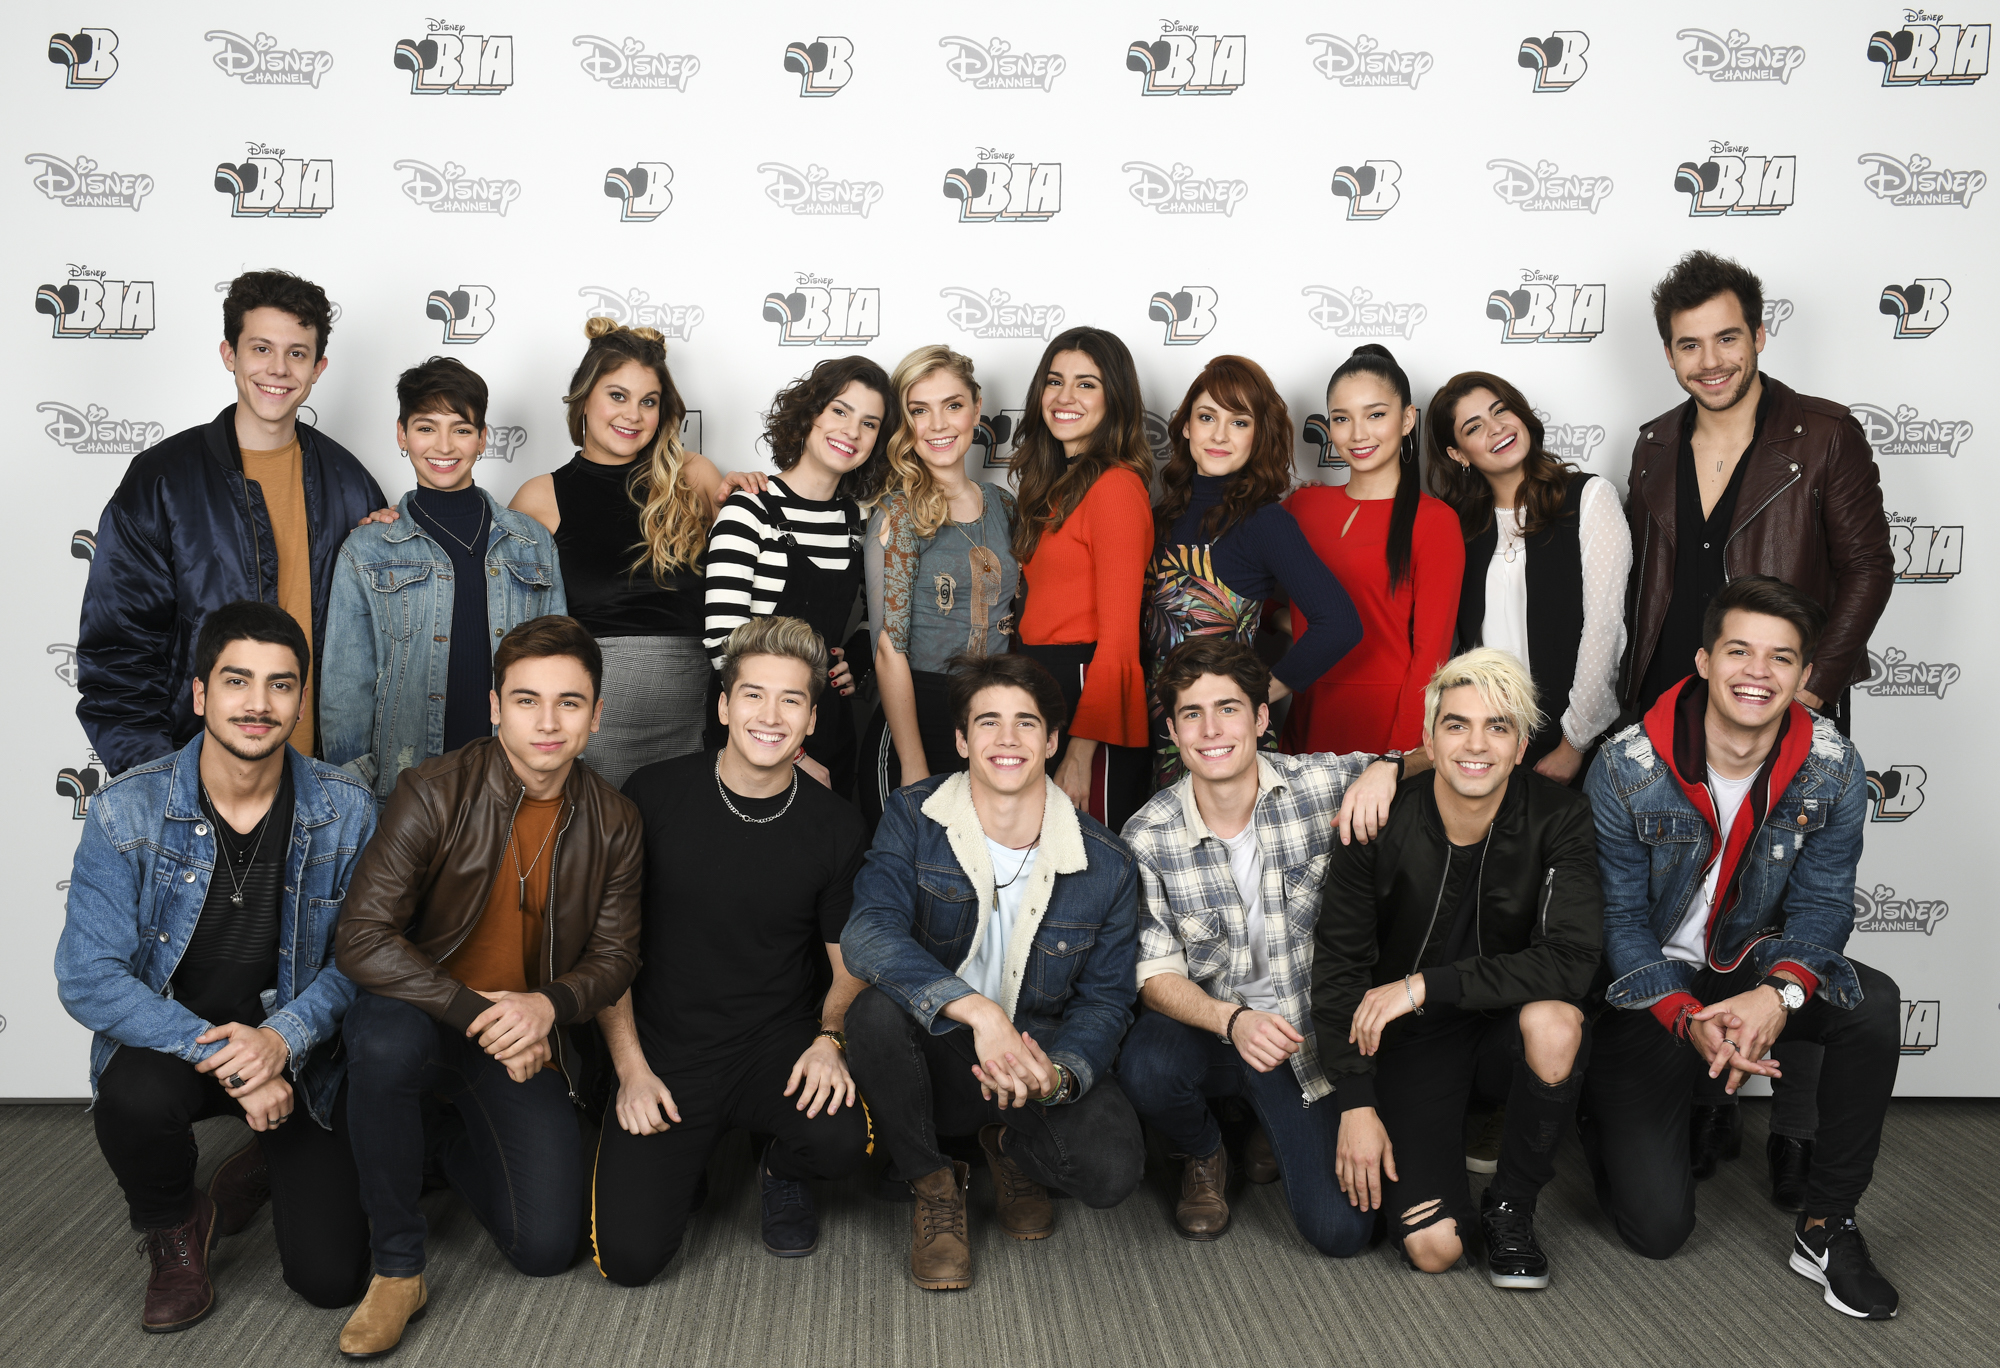 Disney Bia - Elenco